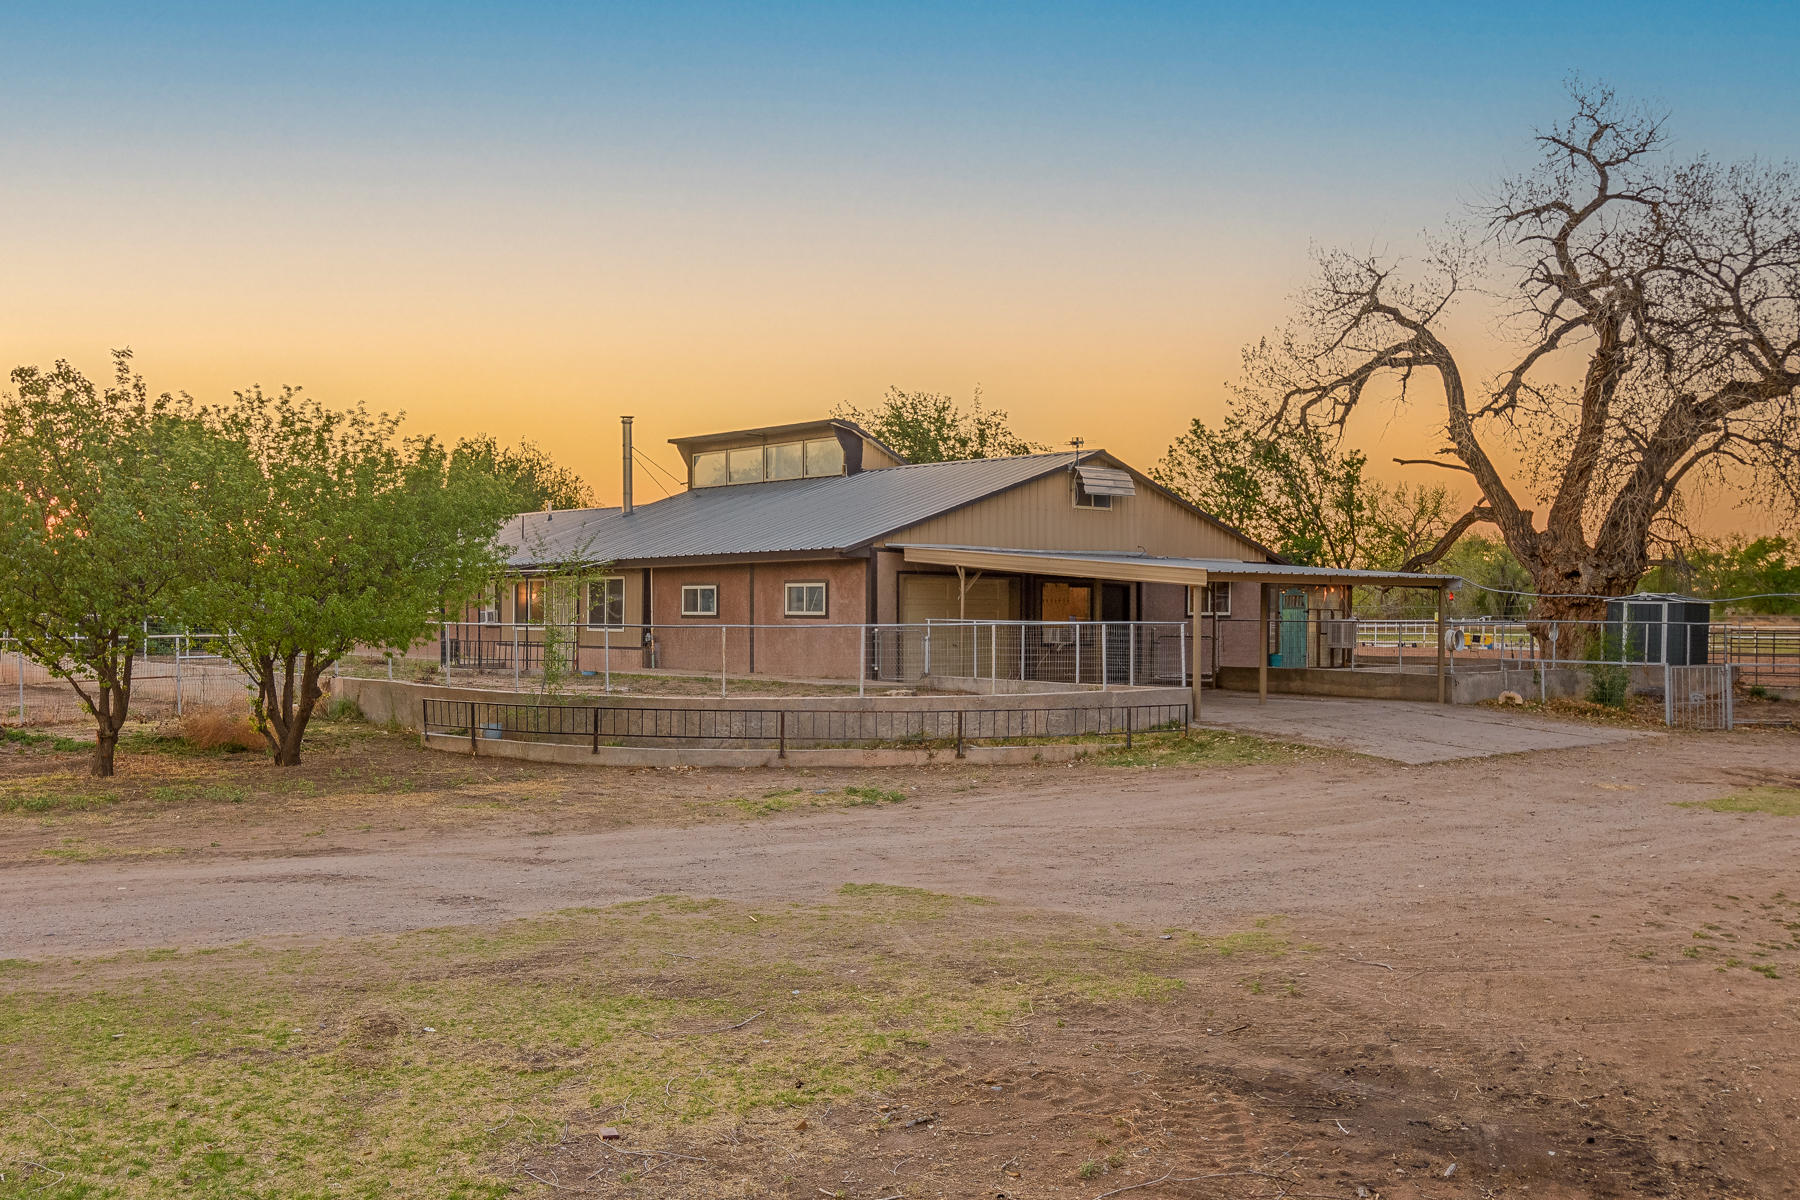 Come see this hidden jewel located in the beautiful South Valley. Just minutes to I-25 access and only 12 minutes from the Albuquerque Sunport. Enjoy the peace and quiet of country living on this full acre horse property with stalls, chicken coop and a huge workshop. The screened in patio will provide great enjoyment on warm summer nights. The outdoor kitchen stays! Home has a private and irrigation well. Application has been submitted to connect to the Los Padillas Drain for extra water usage. The uniquely built 3 bed 2 bad home lends itself to many options and opportunities. Schedule your tour today!!